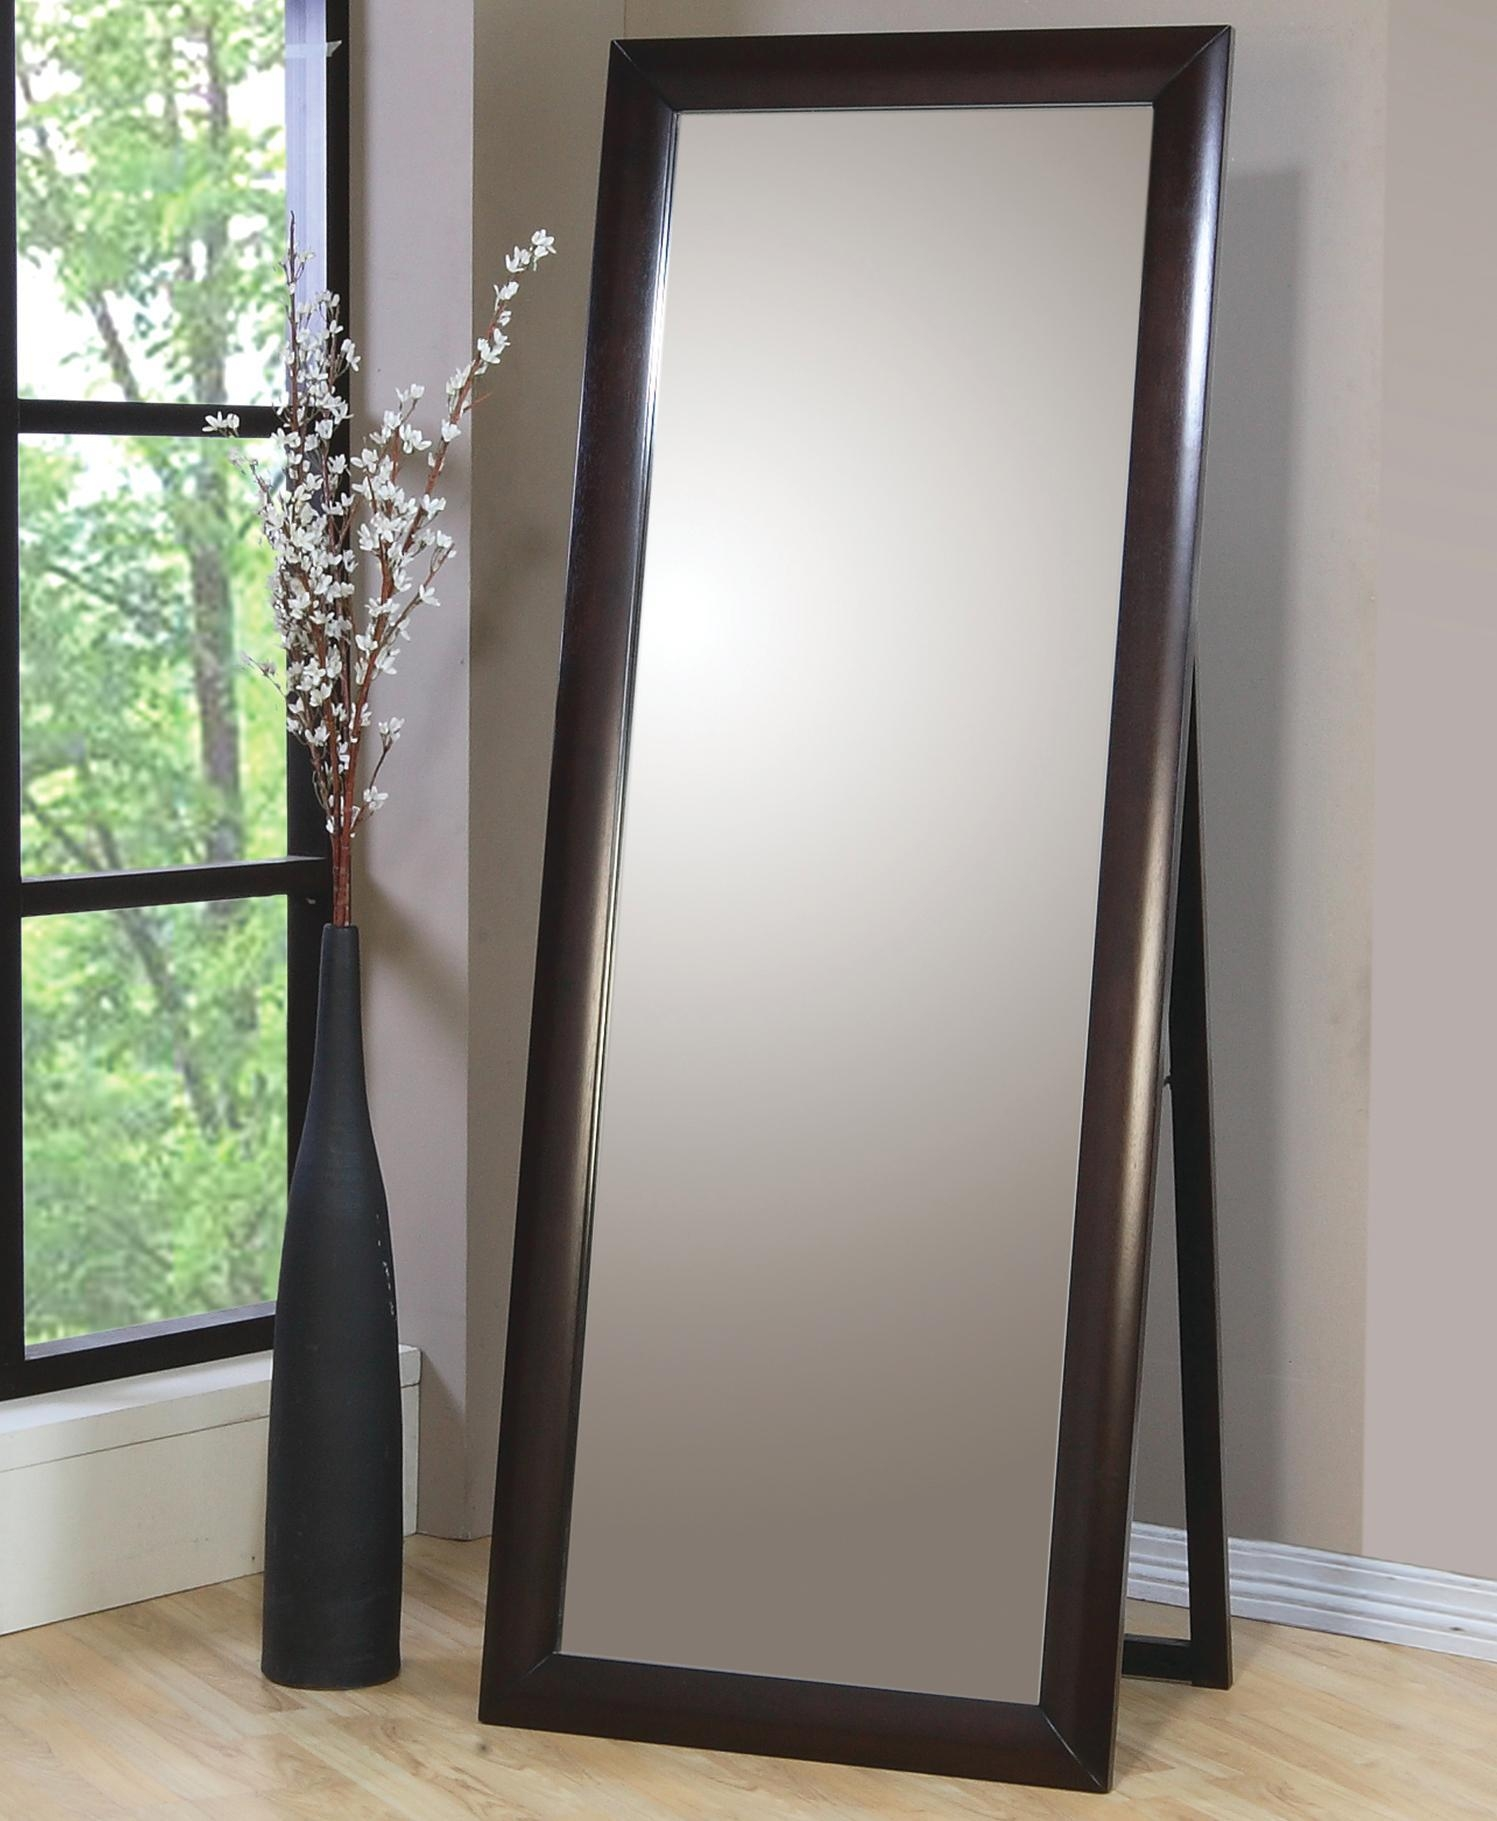 Flooring : Mirrors Ikea 41852 Pe136474 S5 Jpg Vintage Floor In Vintage Floor Length Mirror (Image 14 of 20)